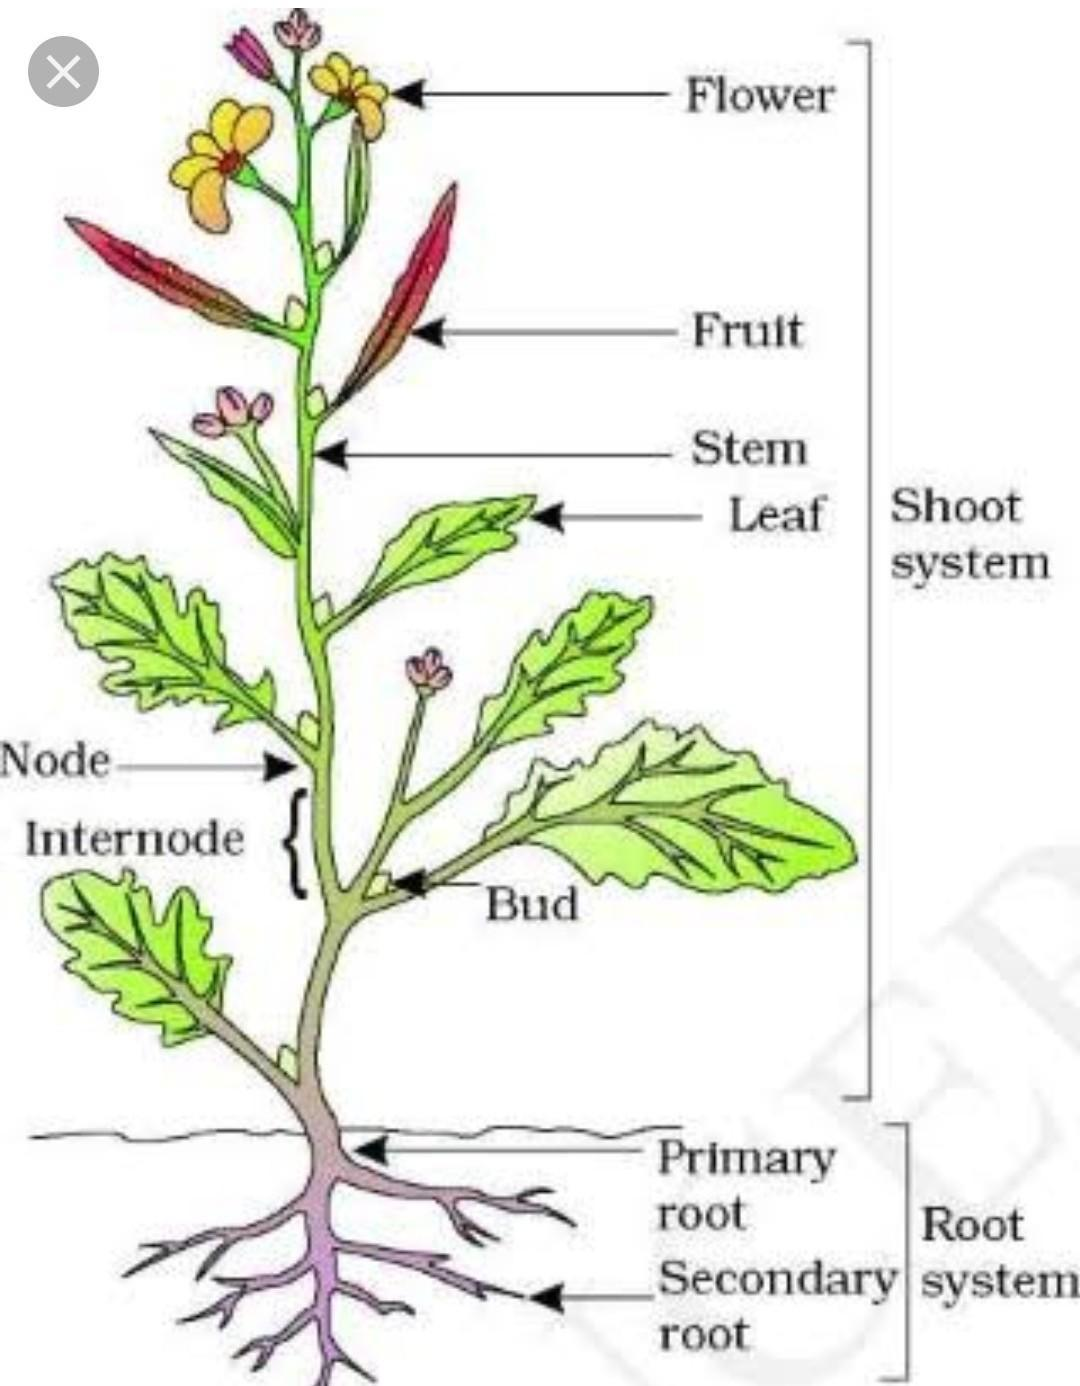 32 Parts Of A Plant To Label